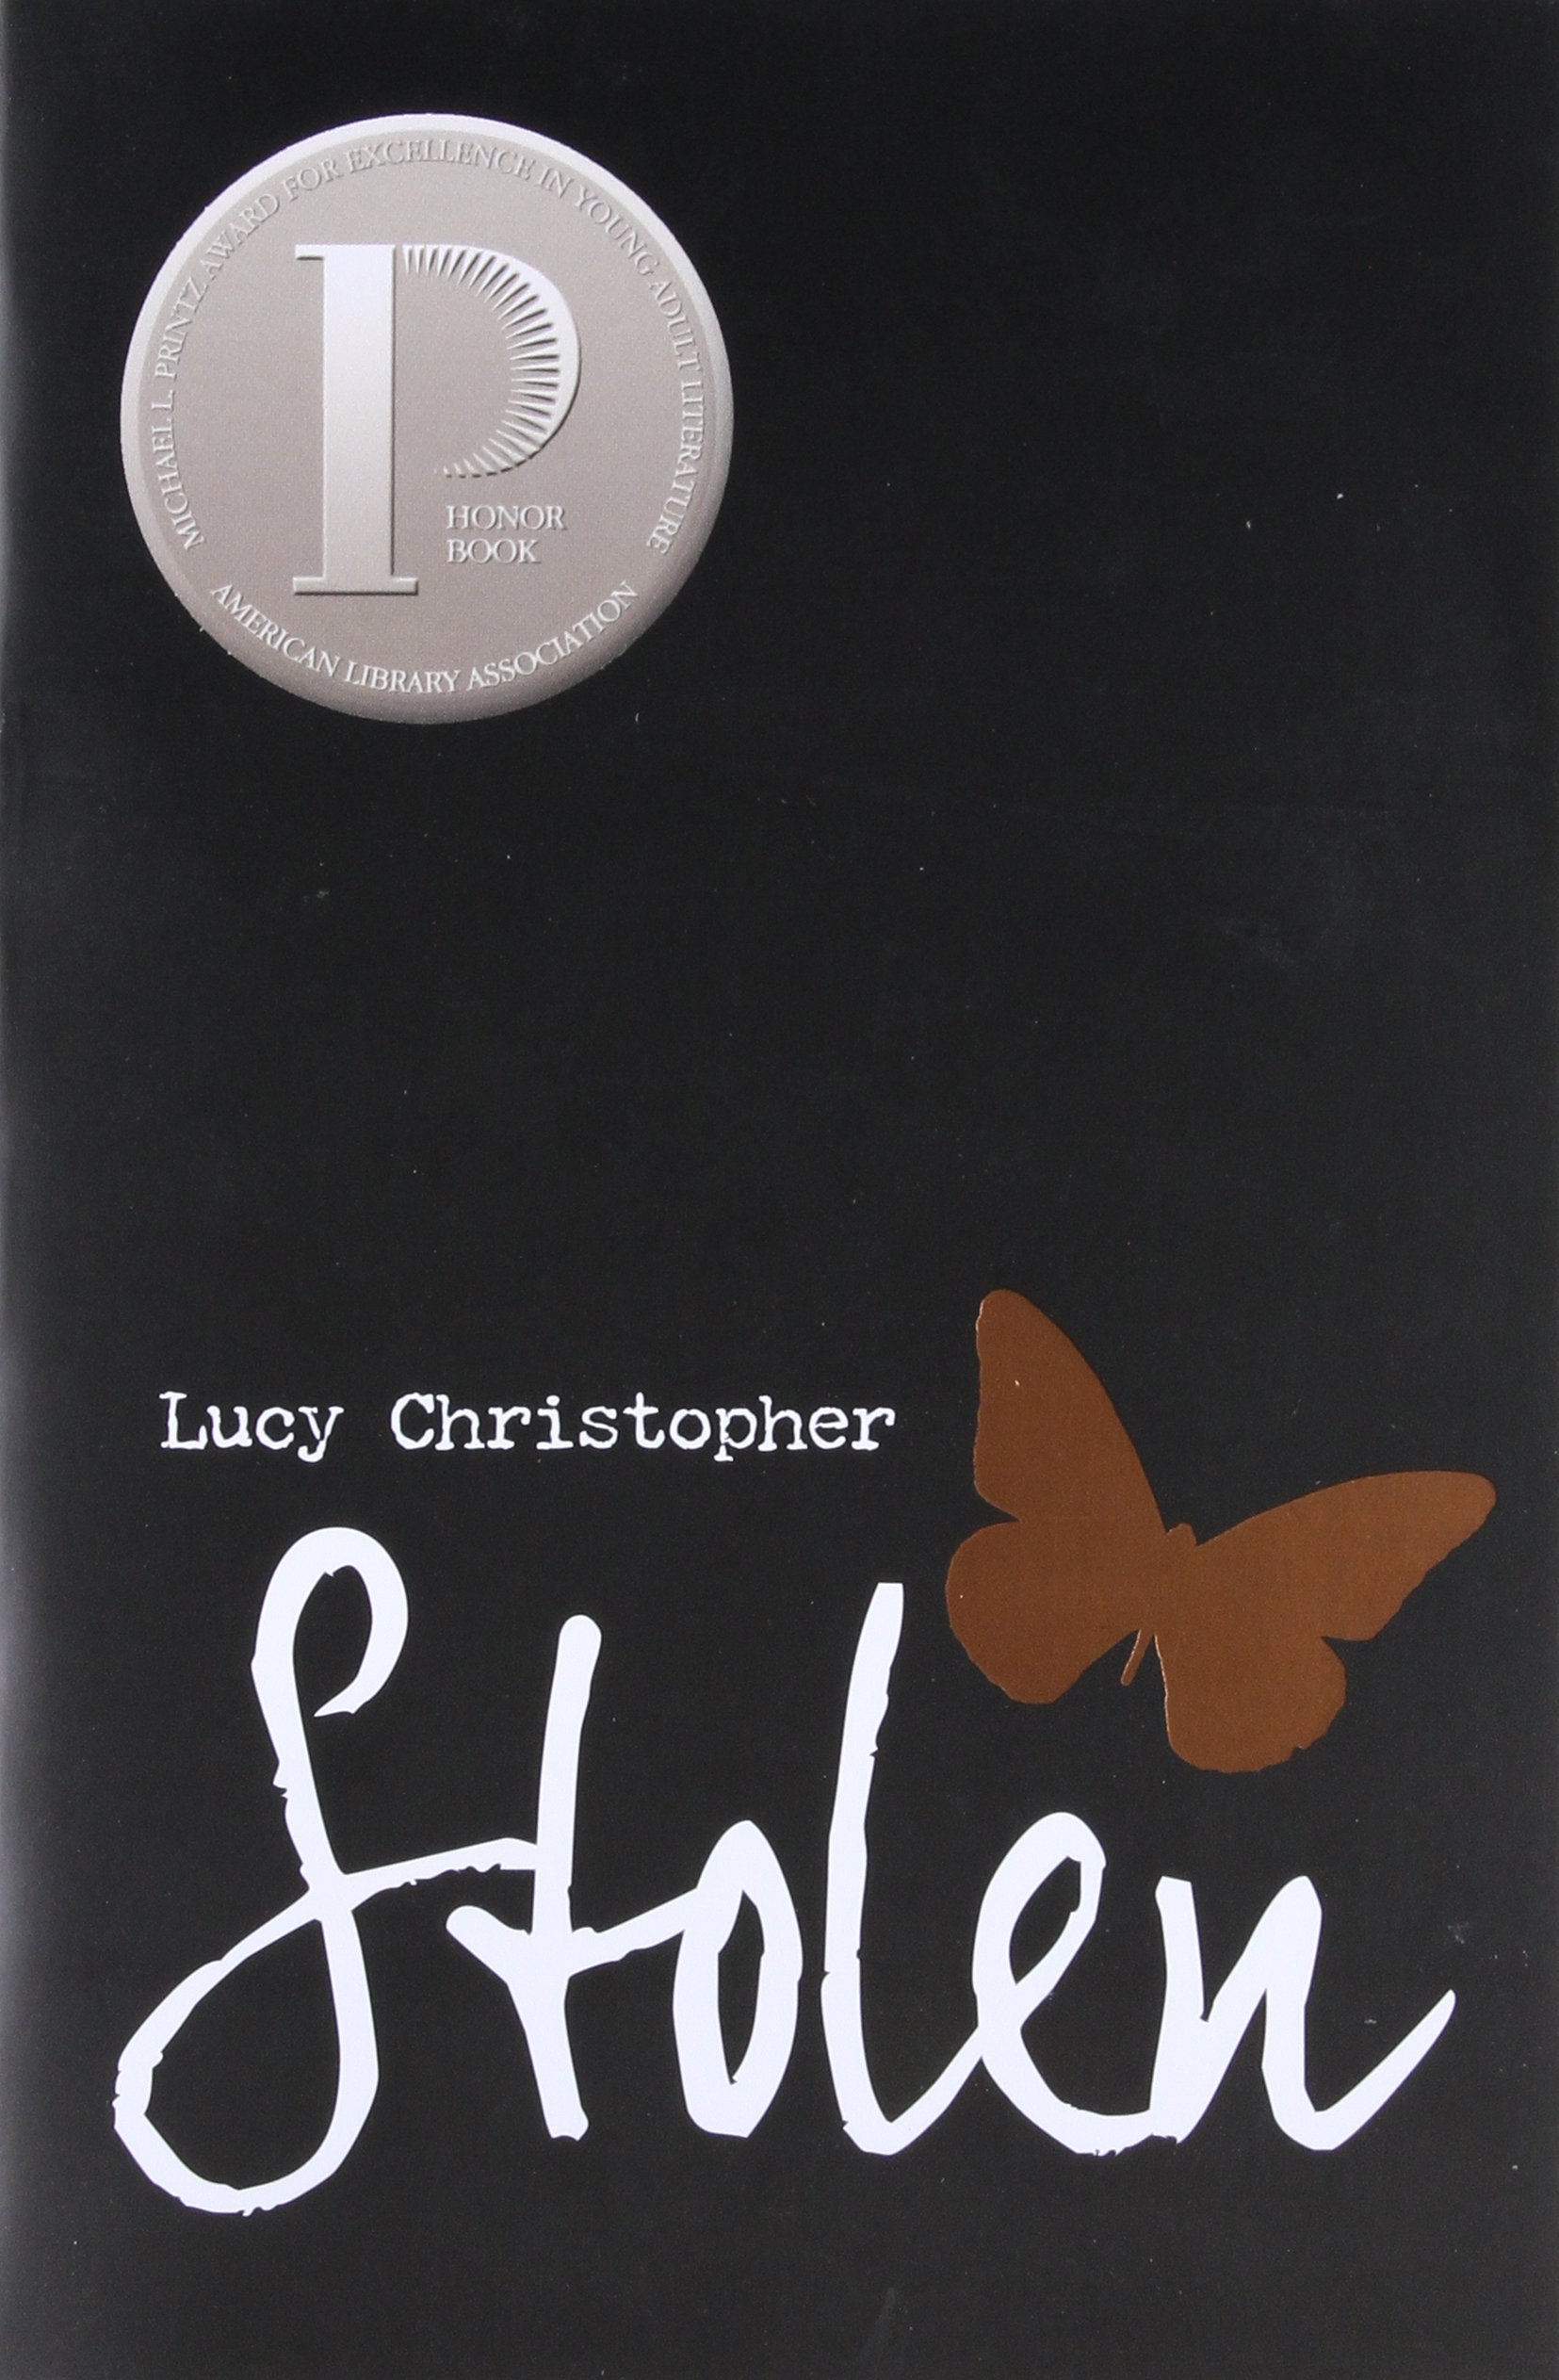 Image result for stolen lucy christopher